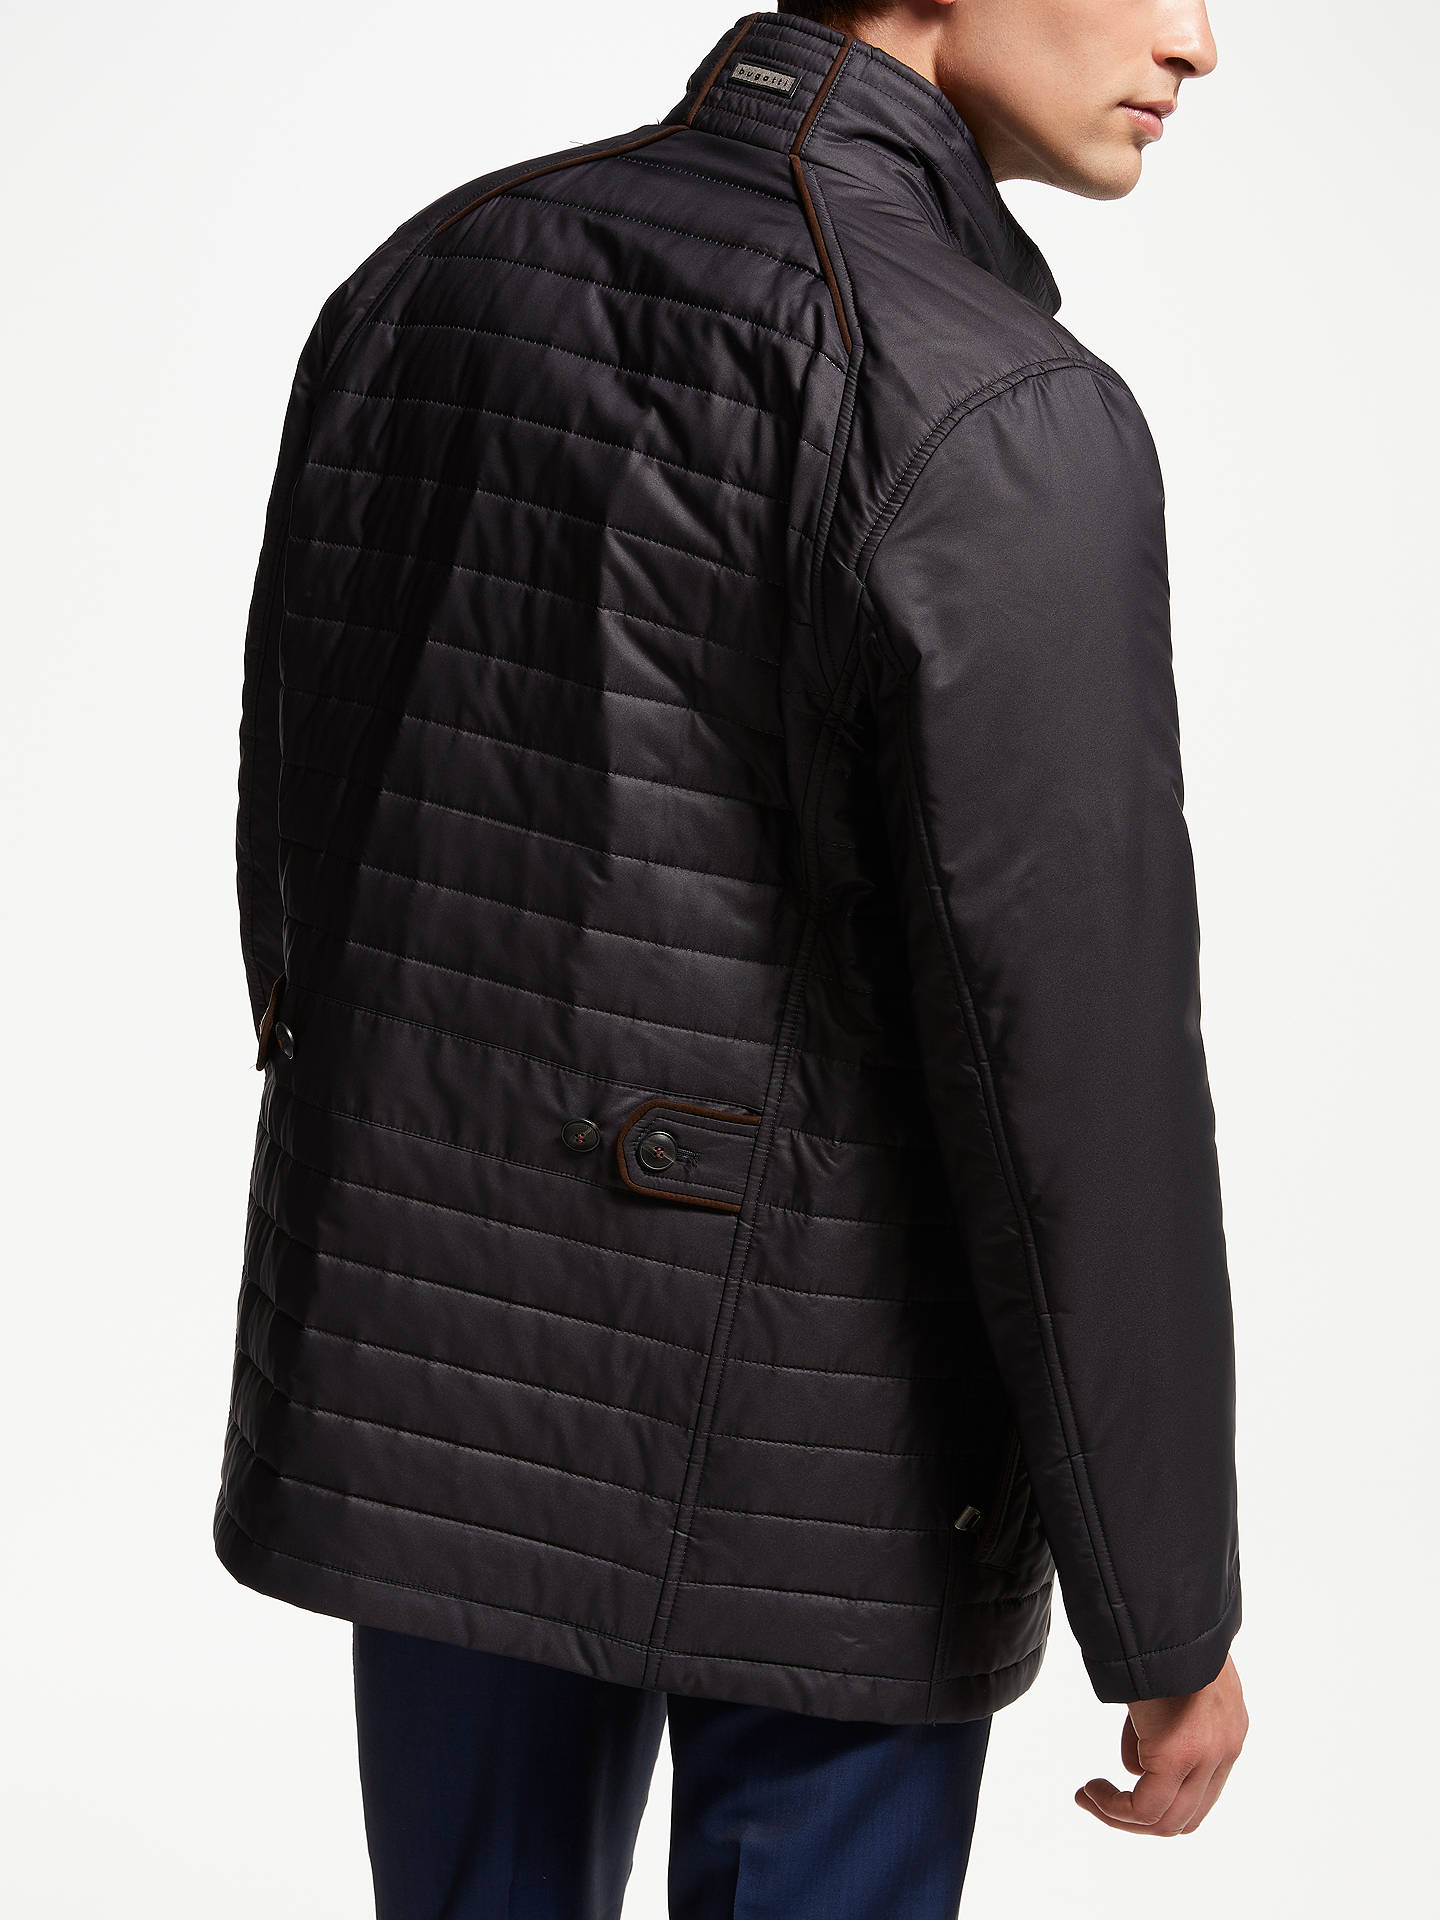 BuyBugatti Button Up Quilted Field Jacket, Blue, 44R Online at johnlewis.com